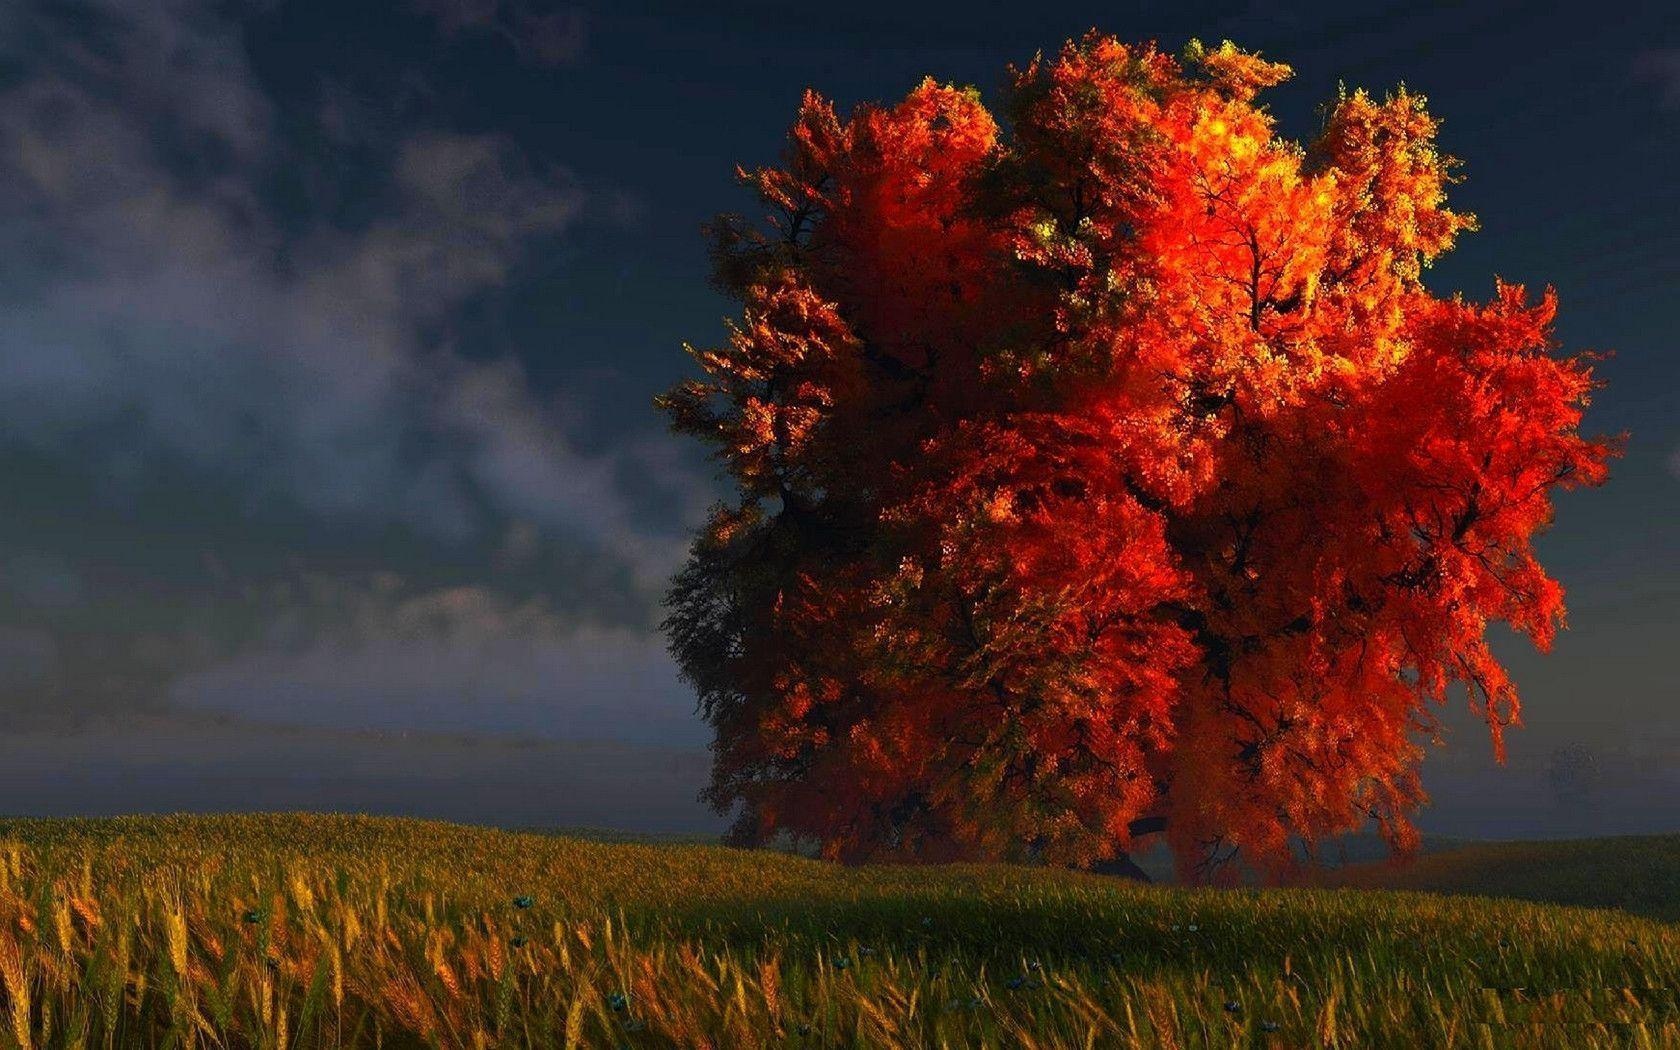 Autumn Tree Wallpaper 61 Images: Fall Trees Wallpapers